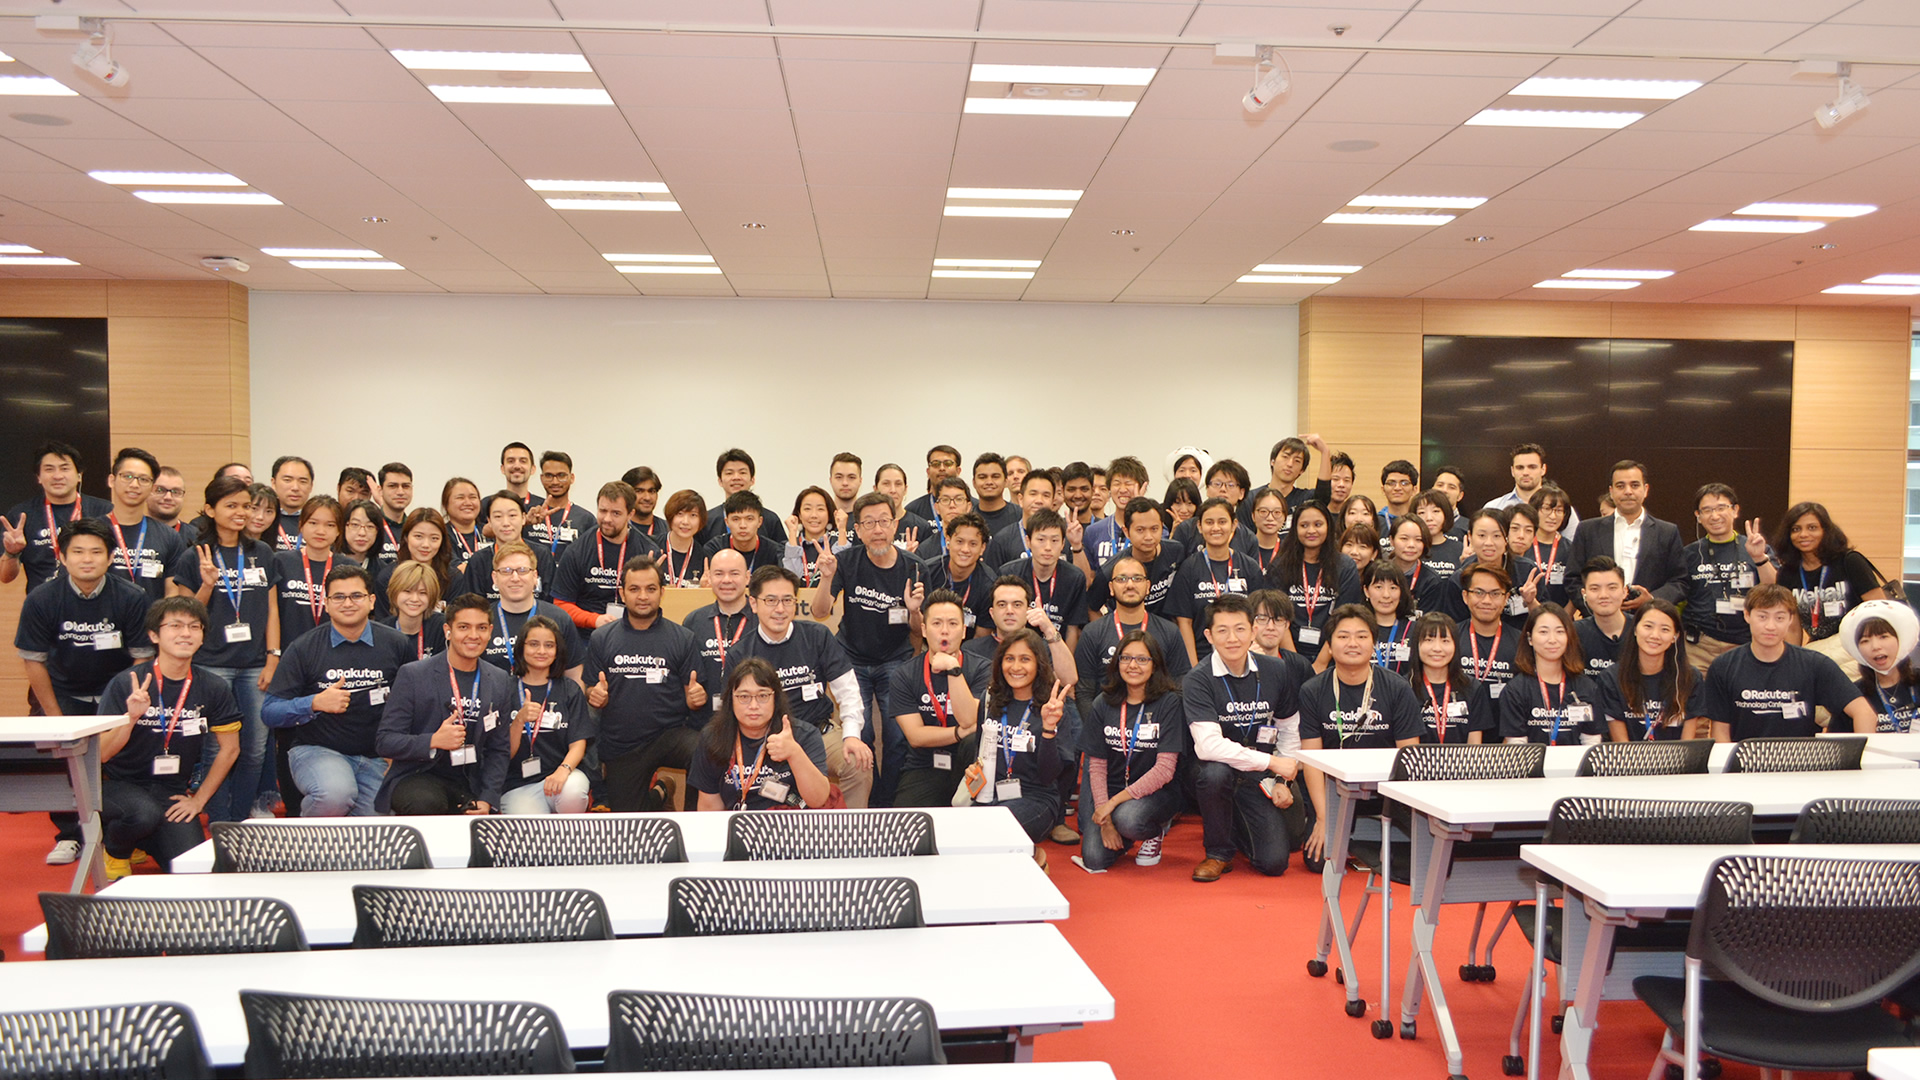 Meeting of Engineering Minds: Rakuten Technology Conference 2017